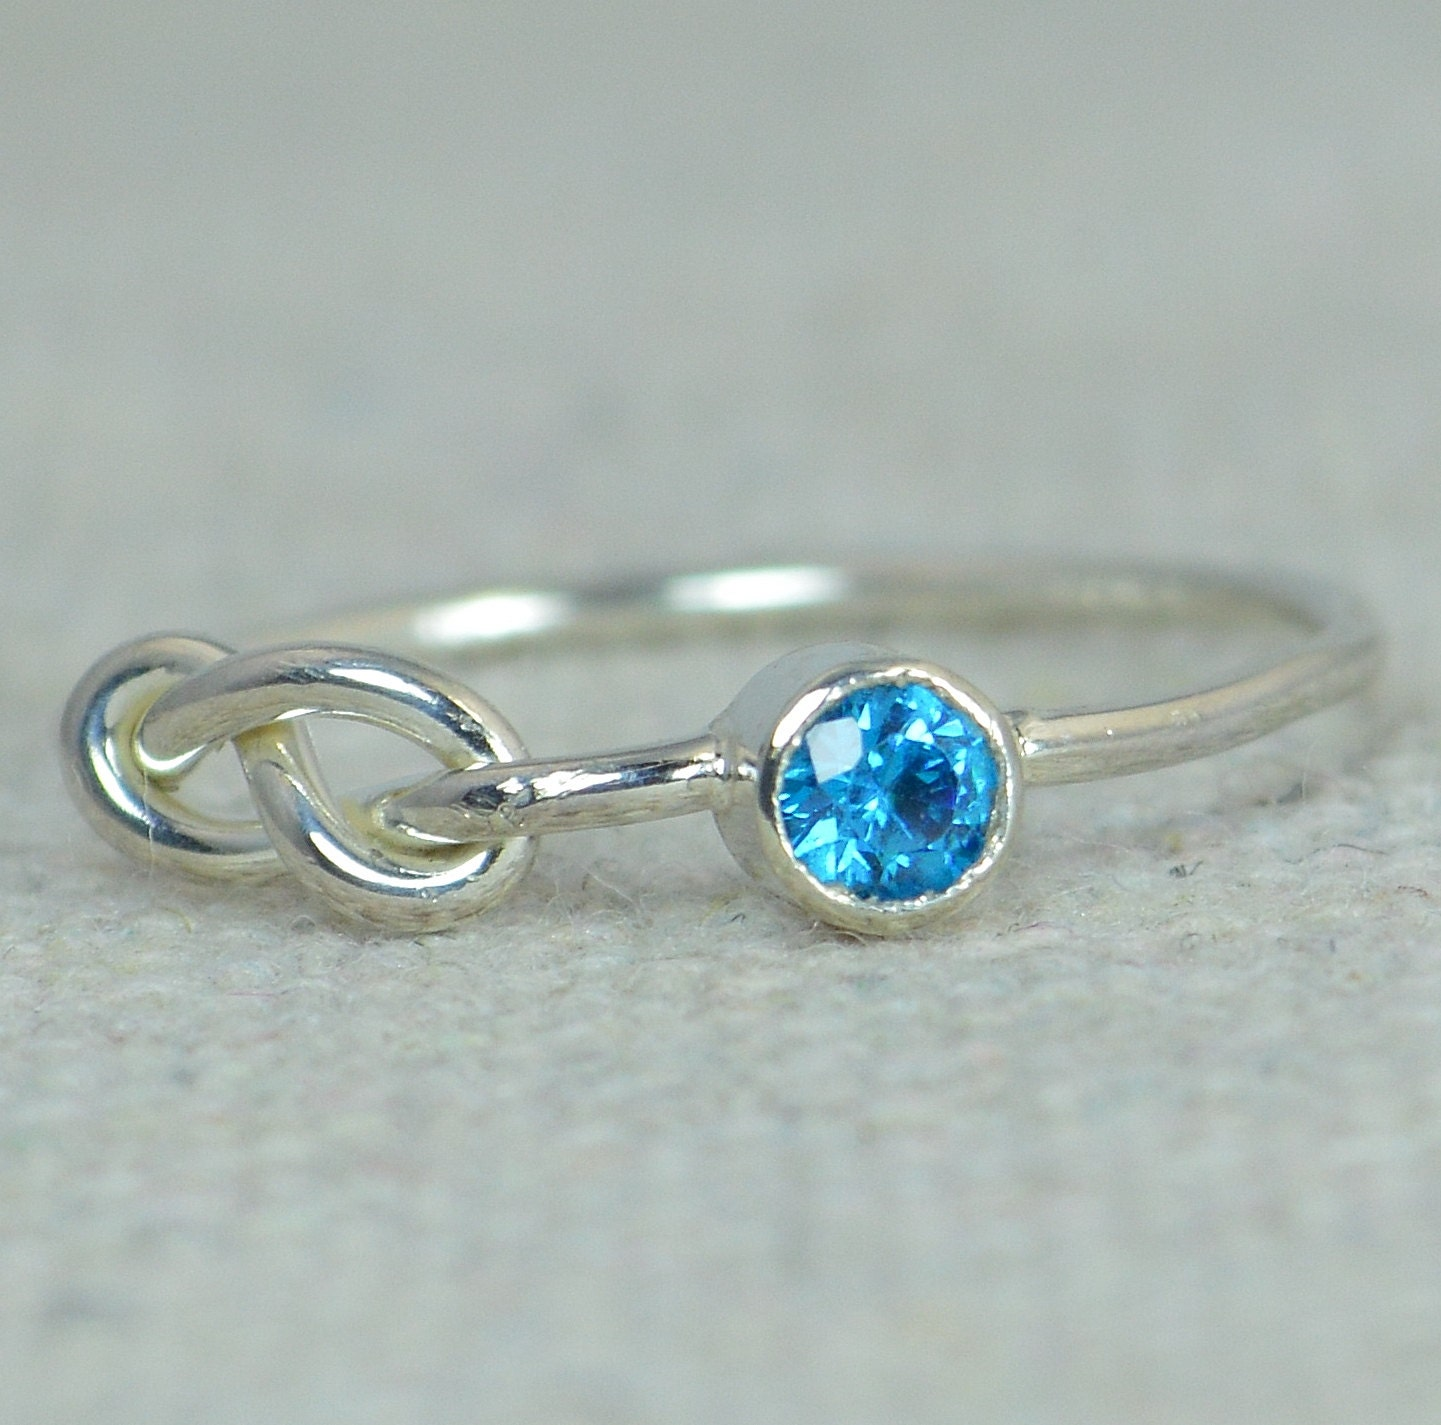 cz color ring earrings birthstone december view engagement september all baguettes jewelry blue bling princess sapphire rh rings silver cut other